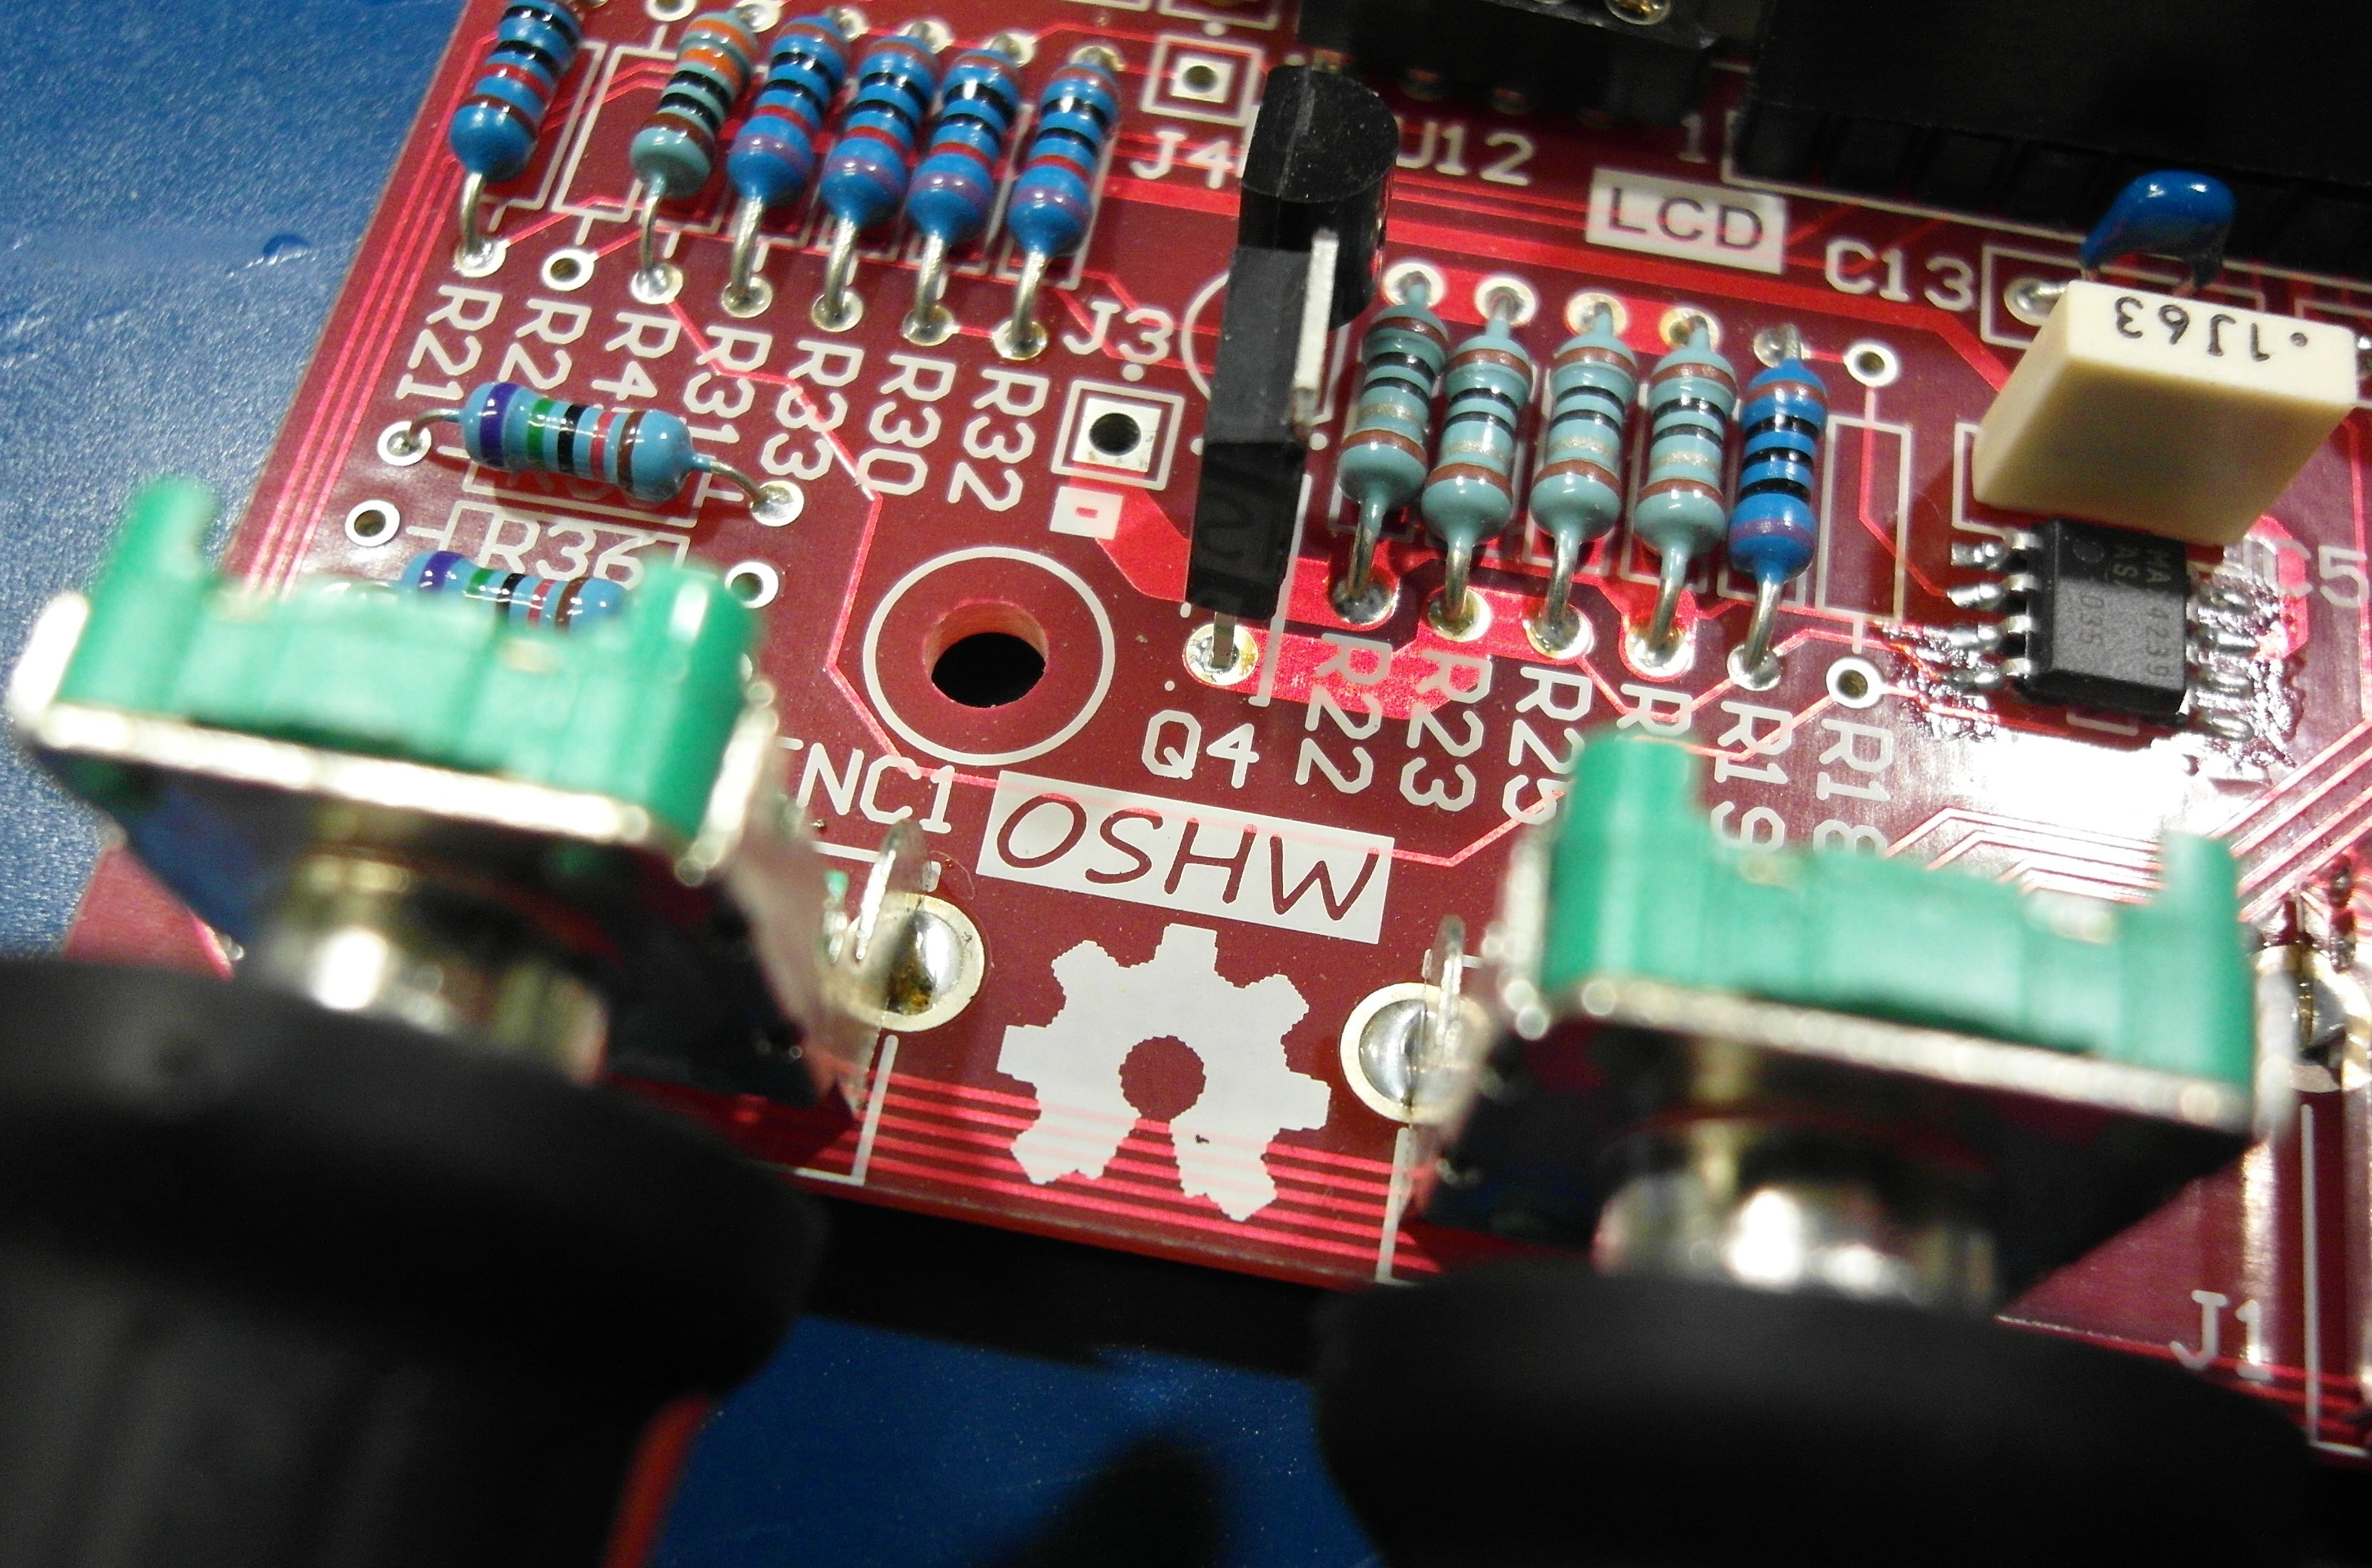 File:Open Source Hardware (OSHW) Logo on populated PCB.jpg ...